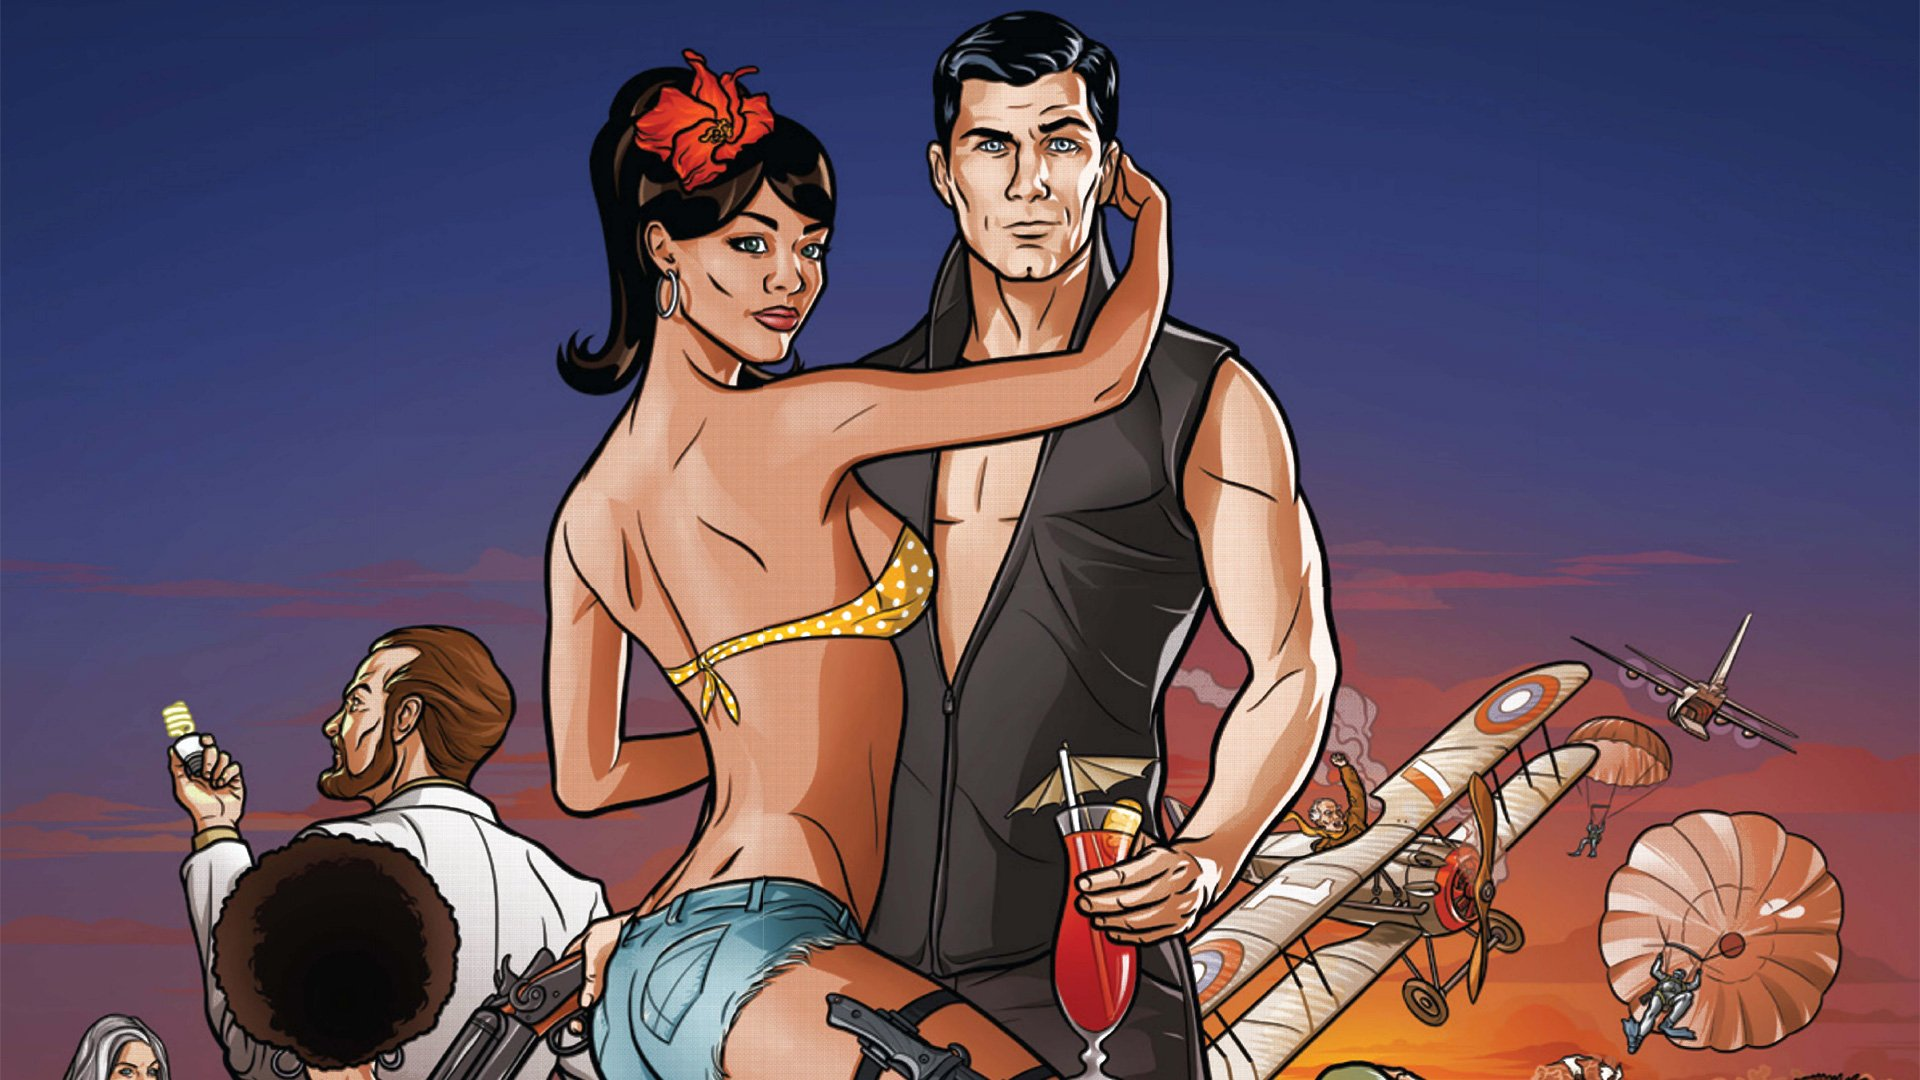 Archer hugs a bikini clad woman while holding a drink in FX's Archer